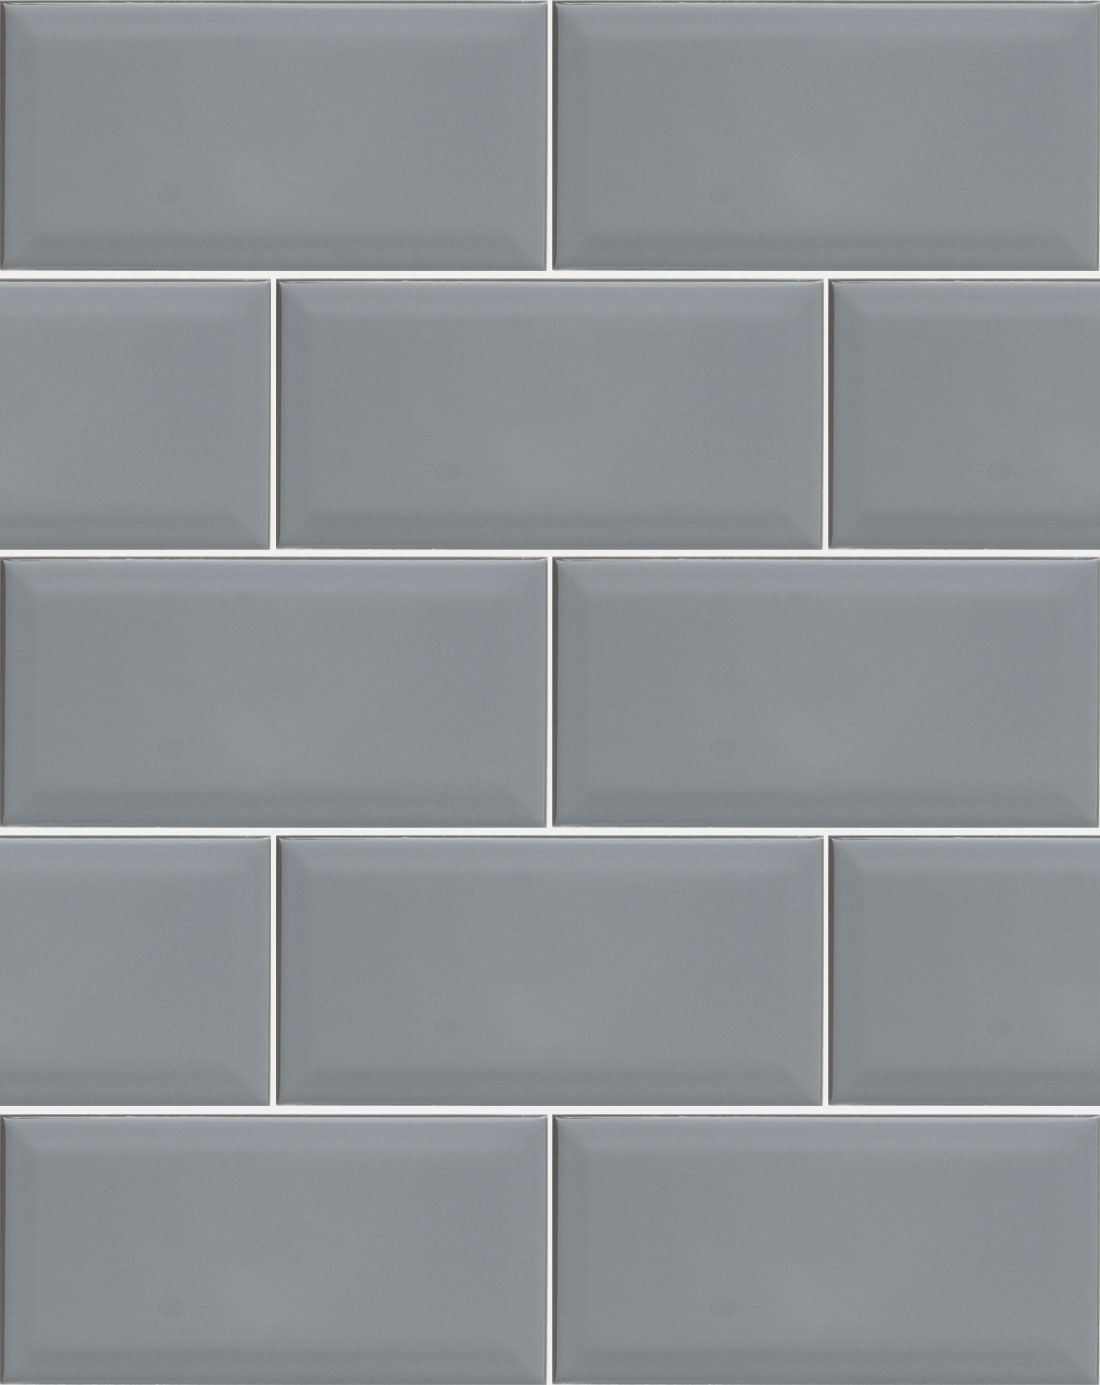 Metro Dark Grey Wall Tiles From Our Best Selling Retro Wall Tile Collection  Perfect For The Kitchen Or Bathroom Various Layout Patterns Can Be Followed  To ...